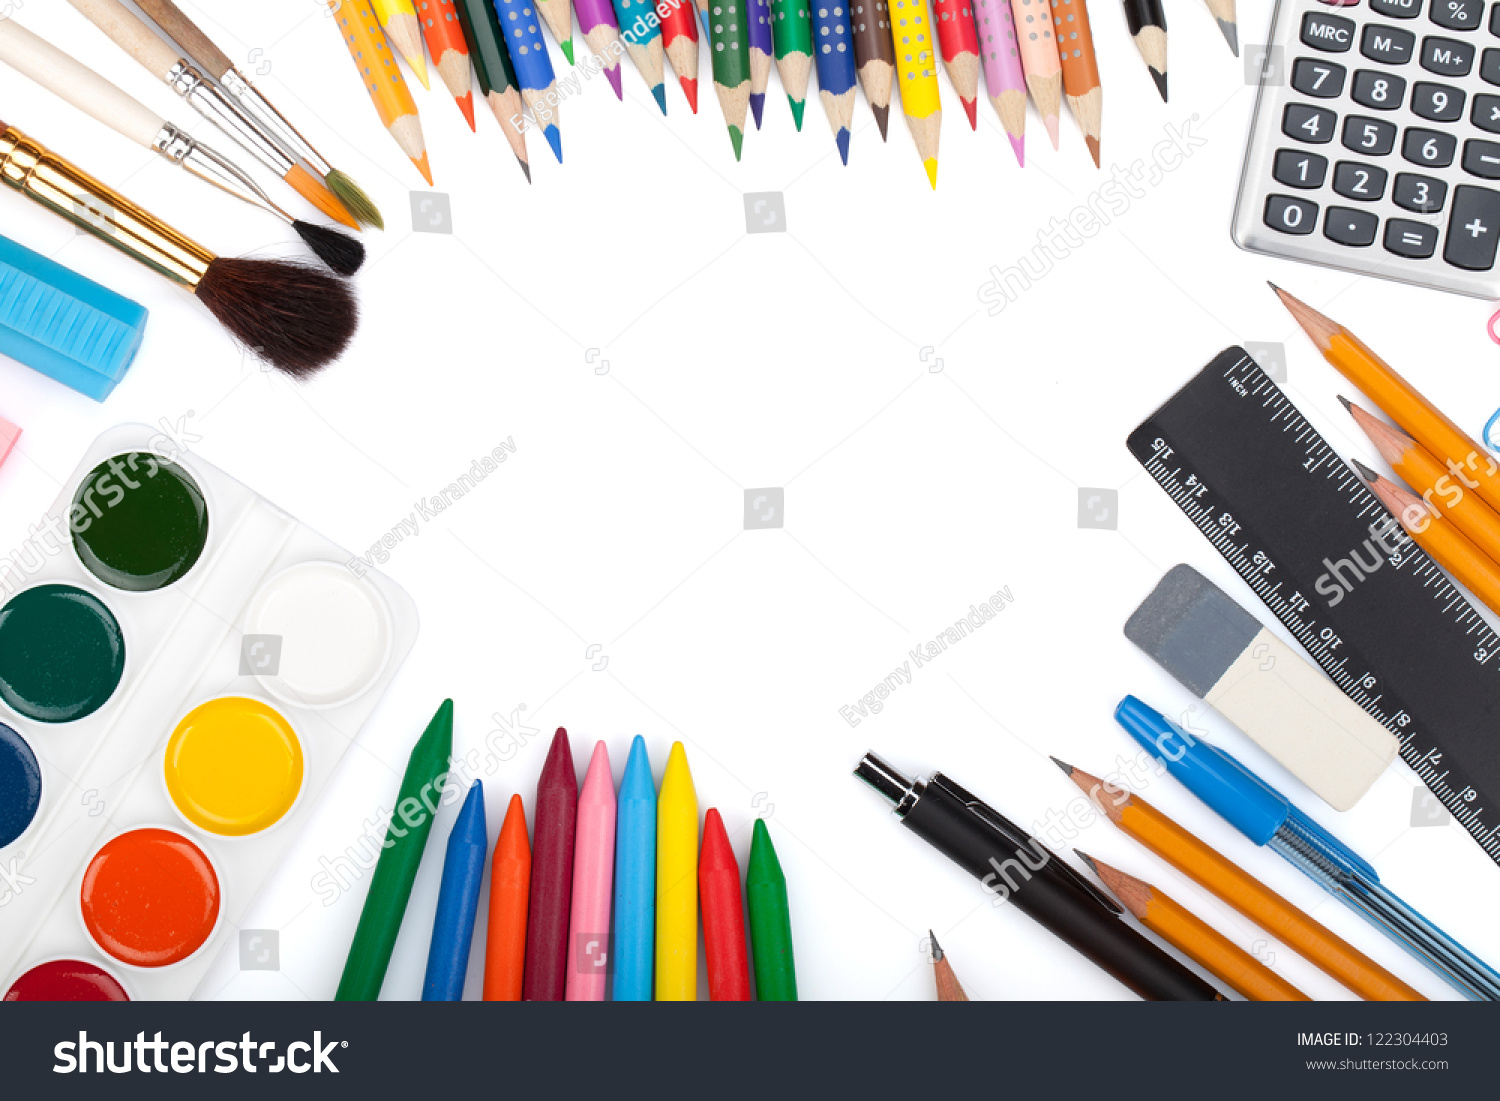 School Office Tools View Above Isolated Stock Photo 122304403 ...